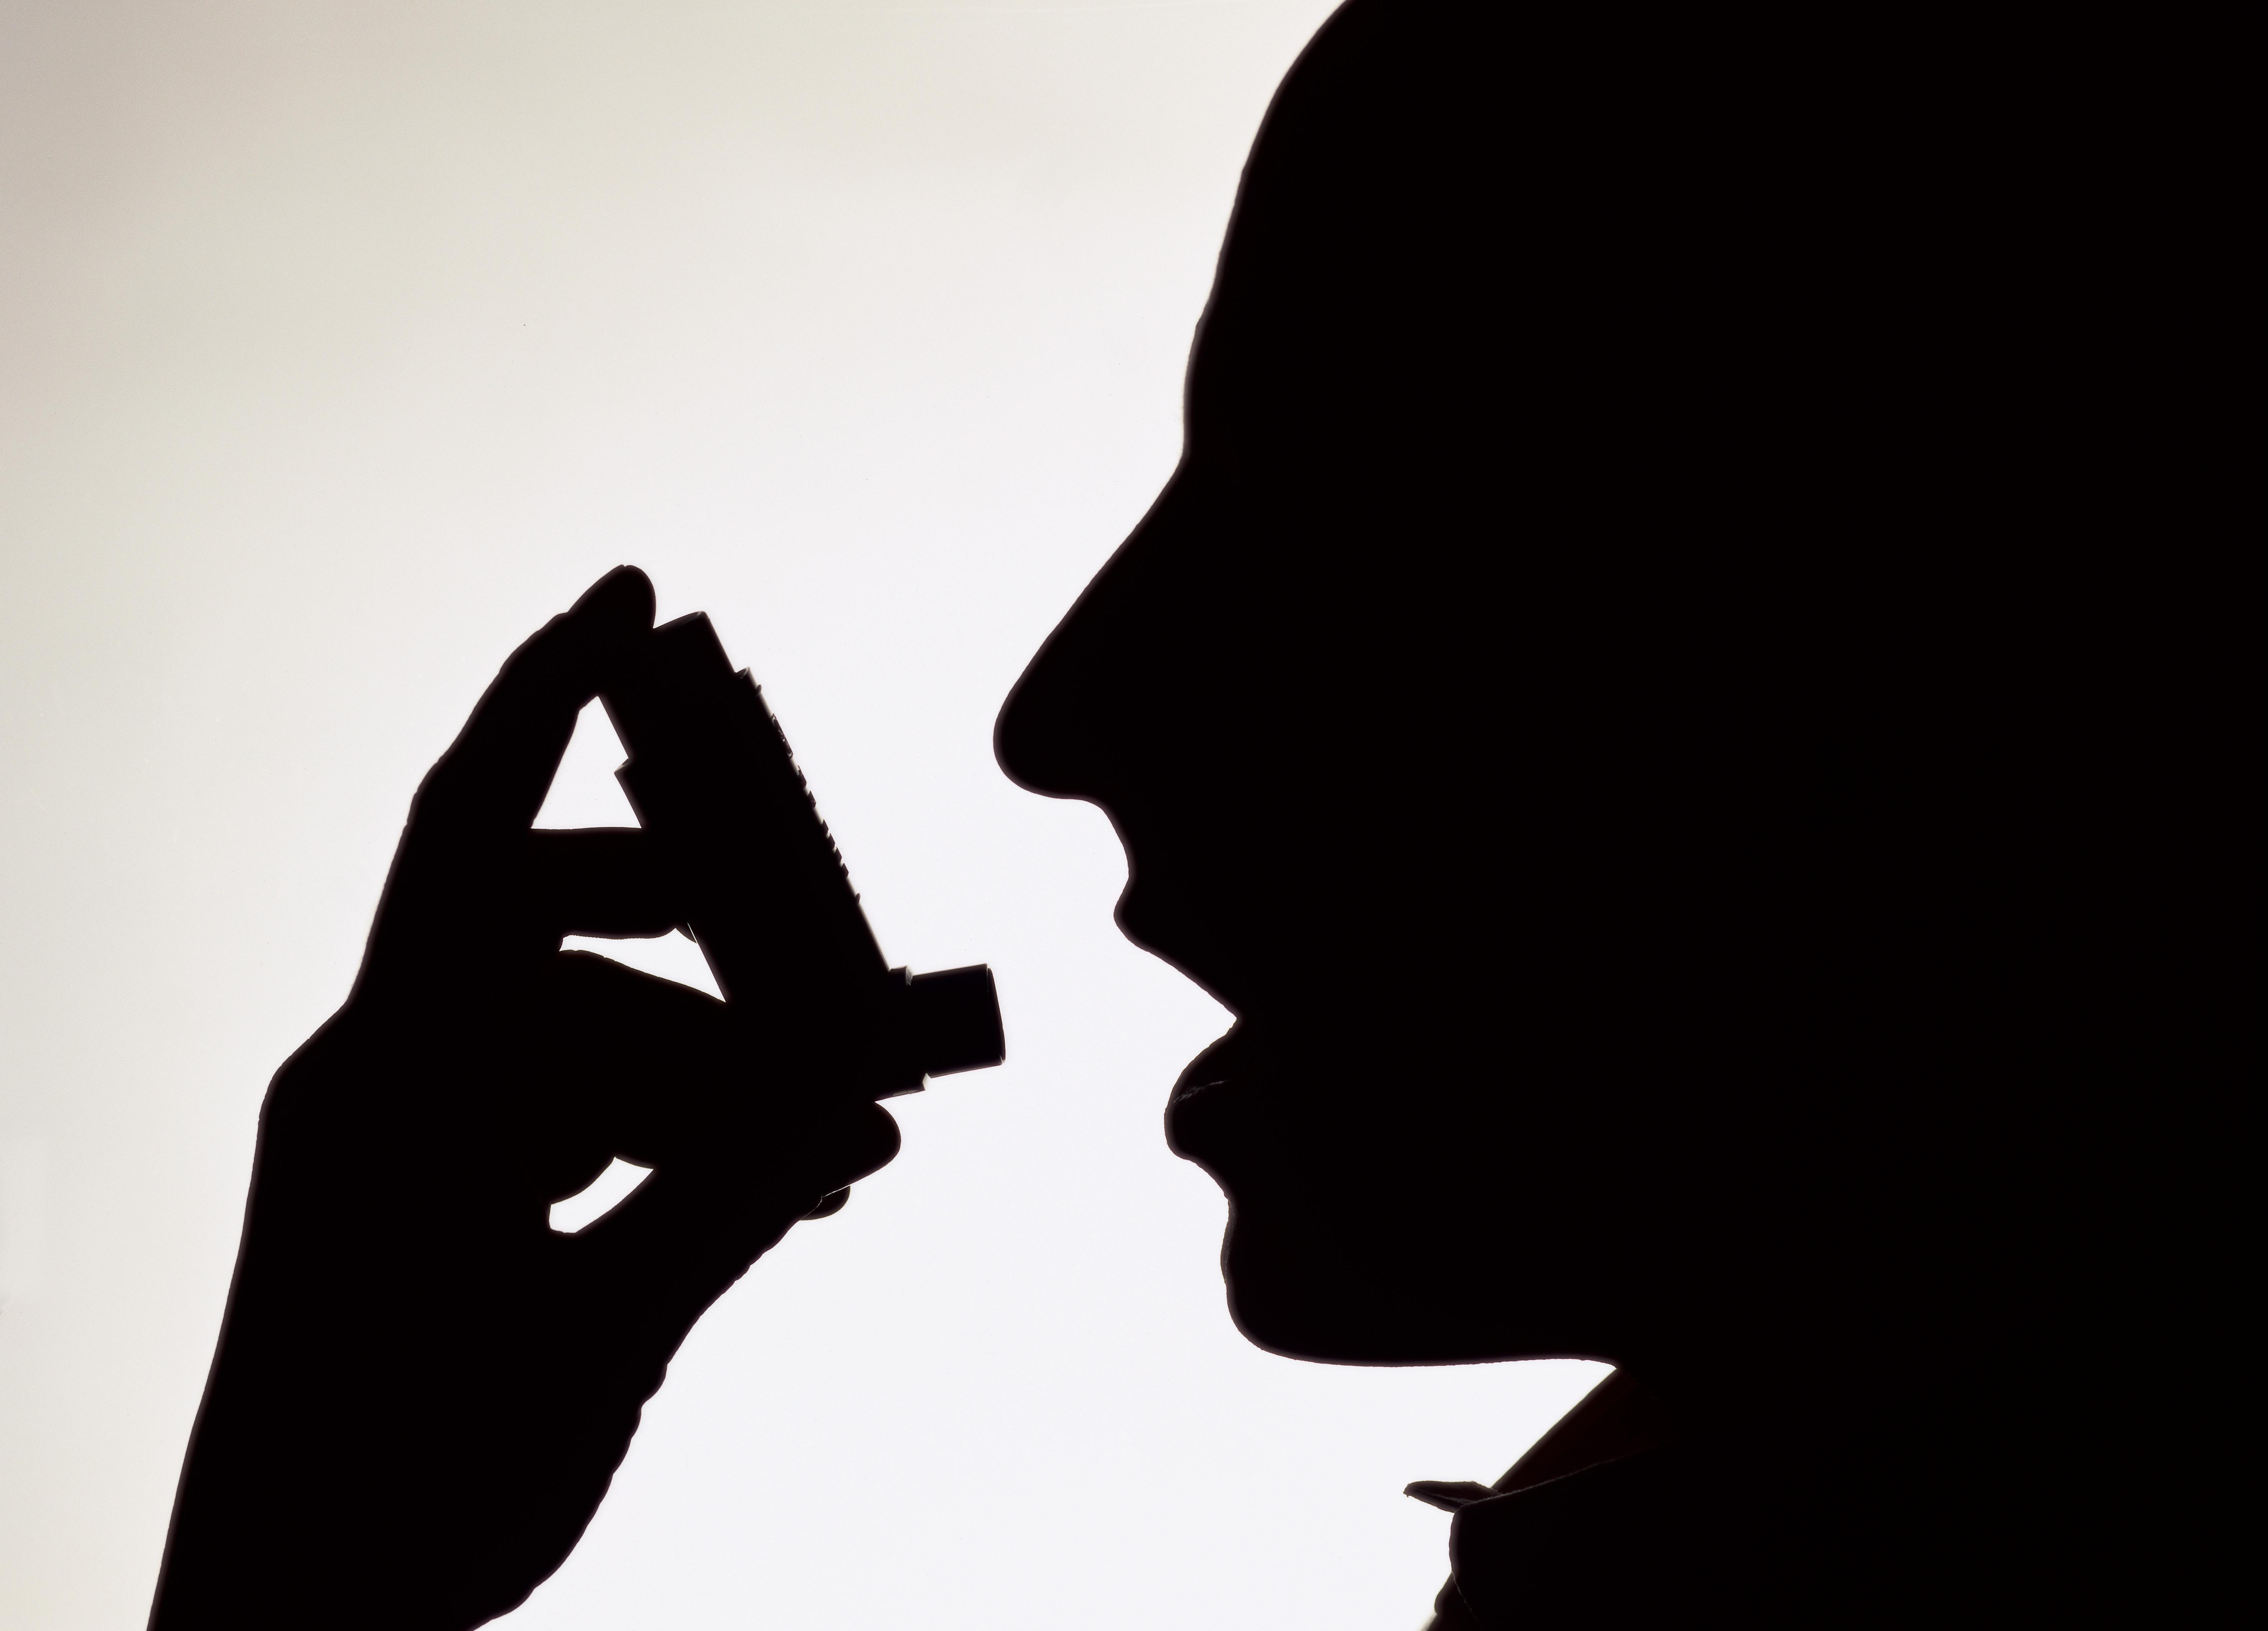 Side profile silhouette of a person using an inhaler